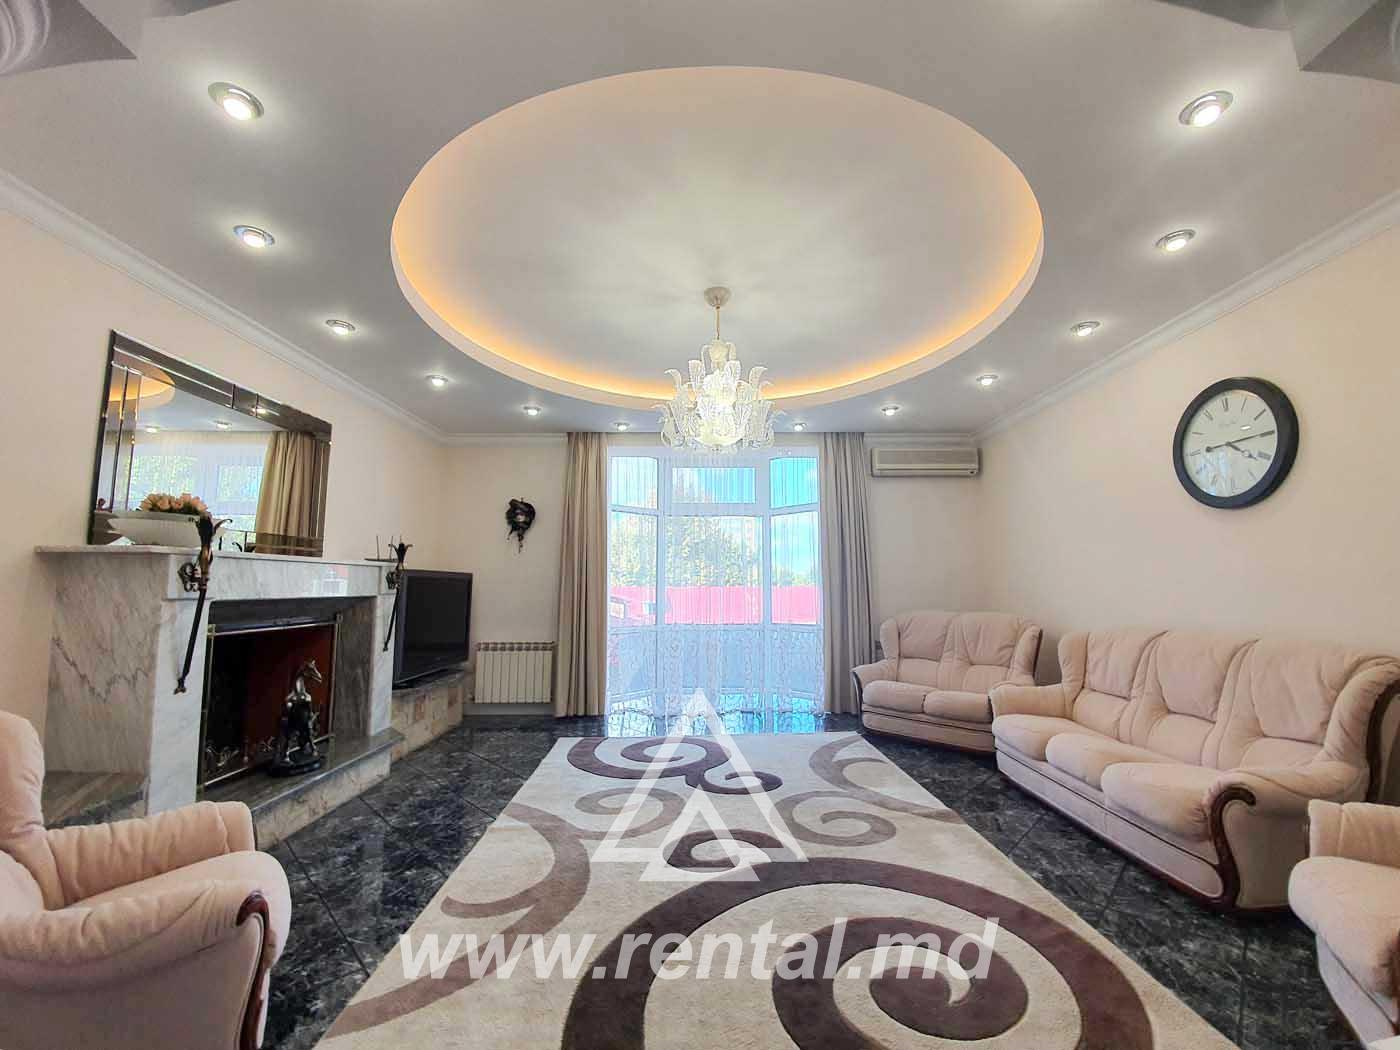 Spacious 3 room apartment for rent, new block of flats